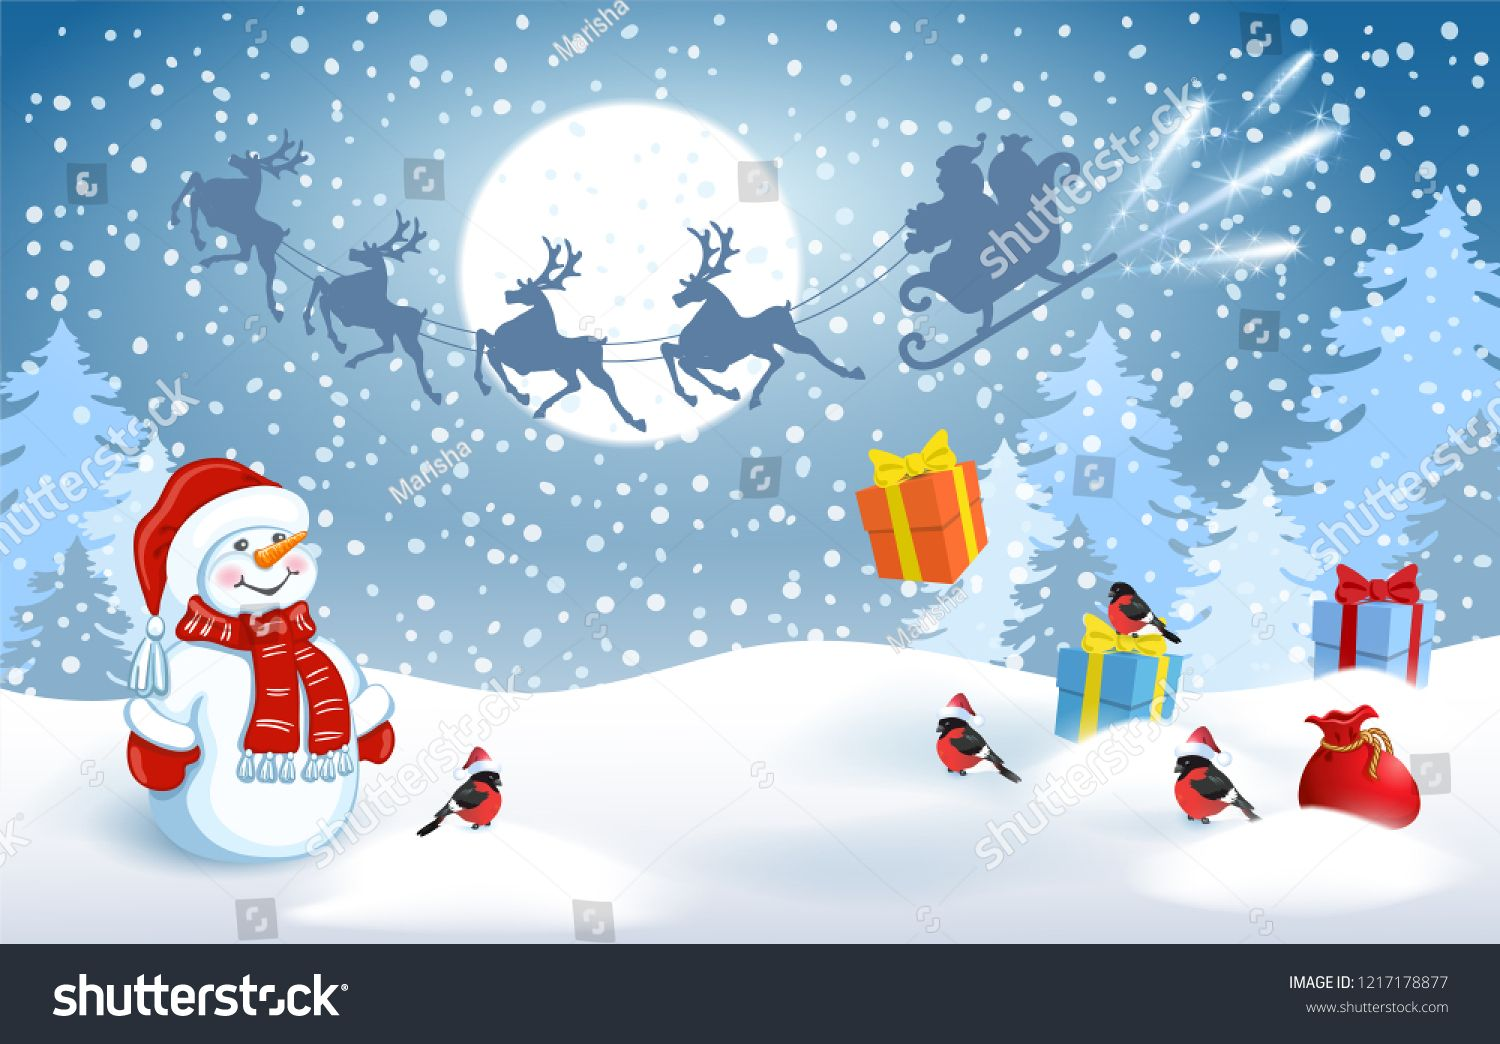 Merry Christmas Wallpaper Saying Merry Christmas Pictures Merry Christmas Wallpaper Funny Merry Christmas Pictures